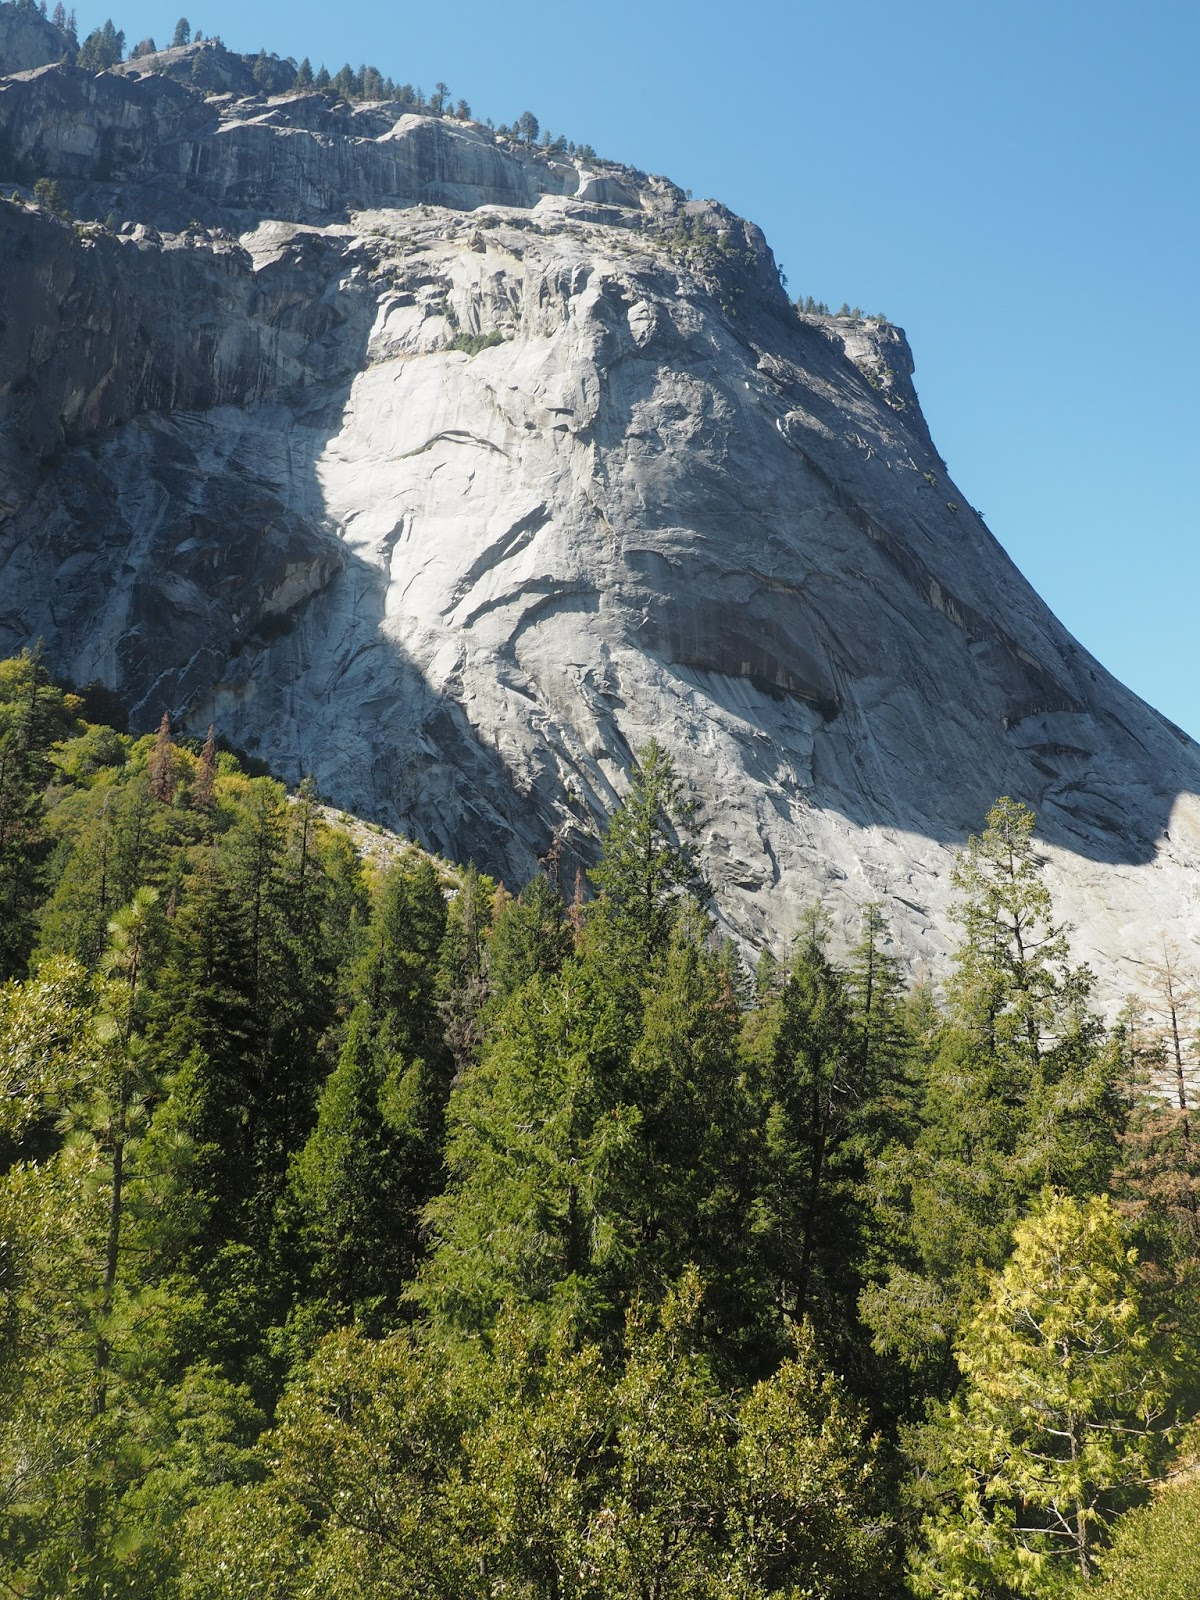 Mountain in Yosemite National Park, California